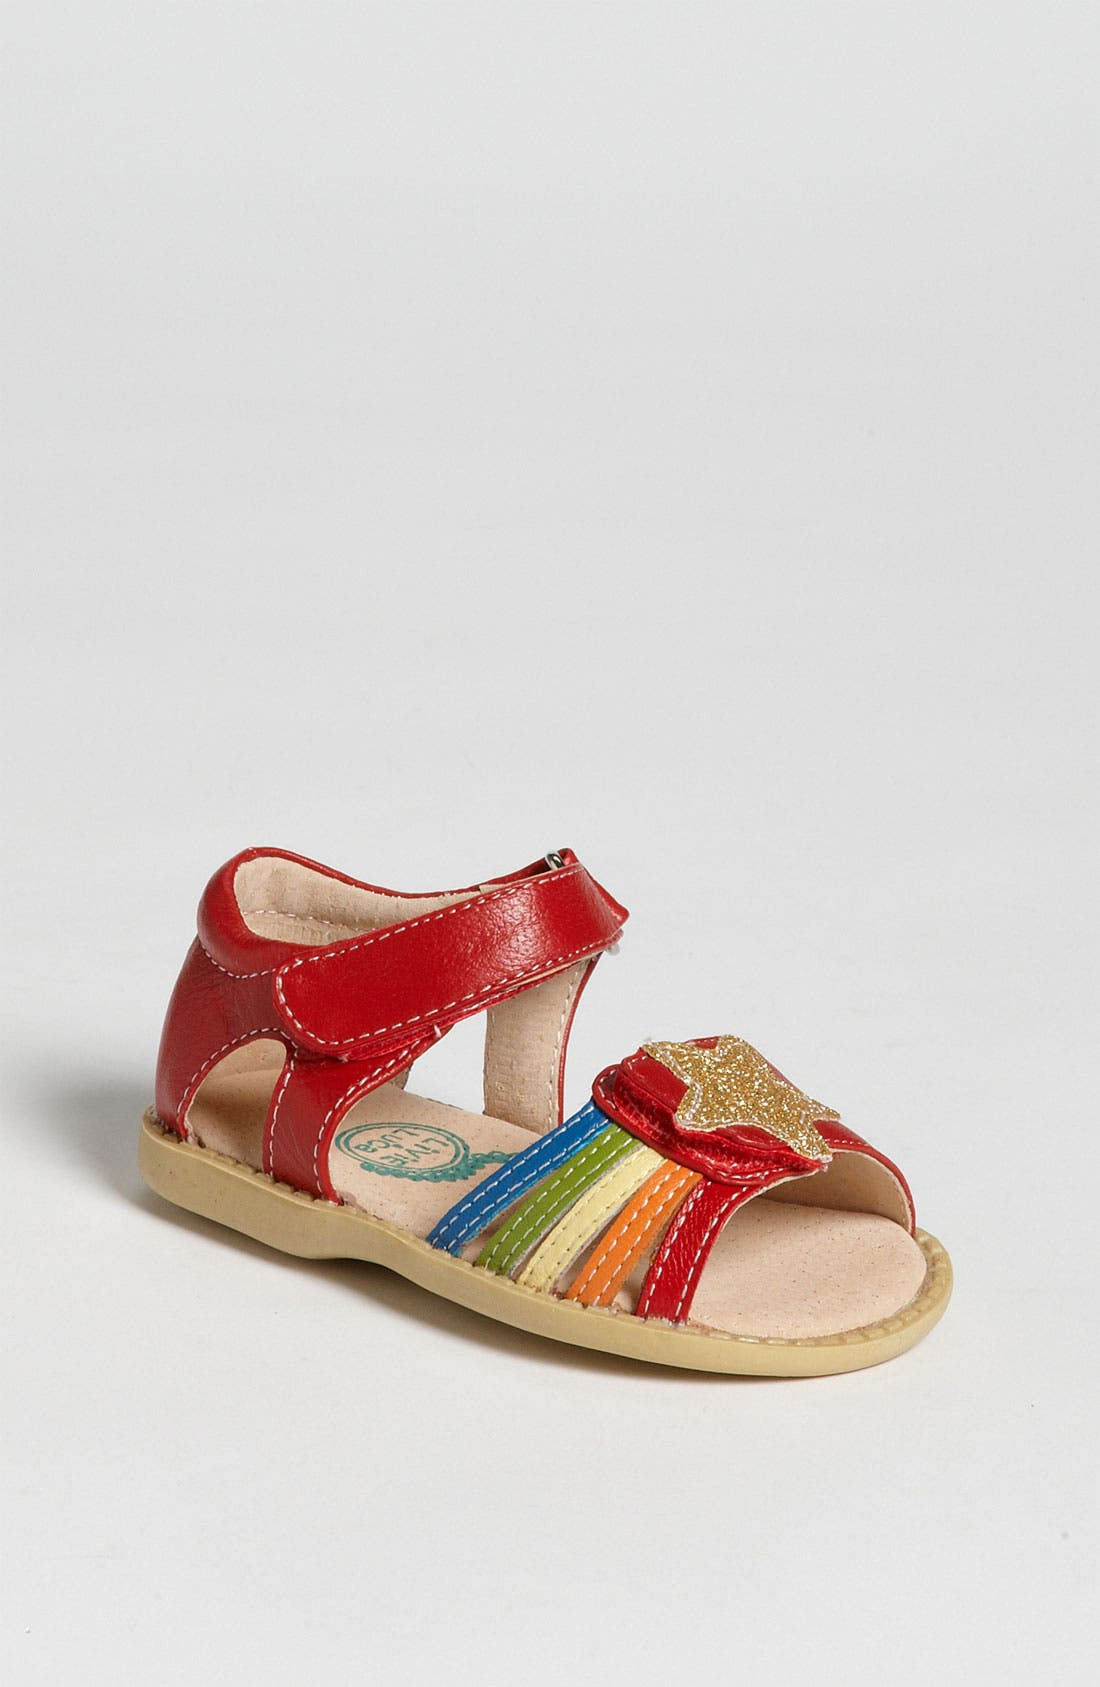 Alternate Image 1 Selected - Livie & Luca 'Nova' Sandal (Baby, Walker & Toddler)